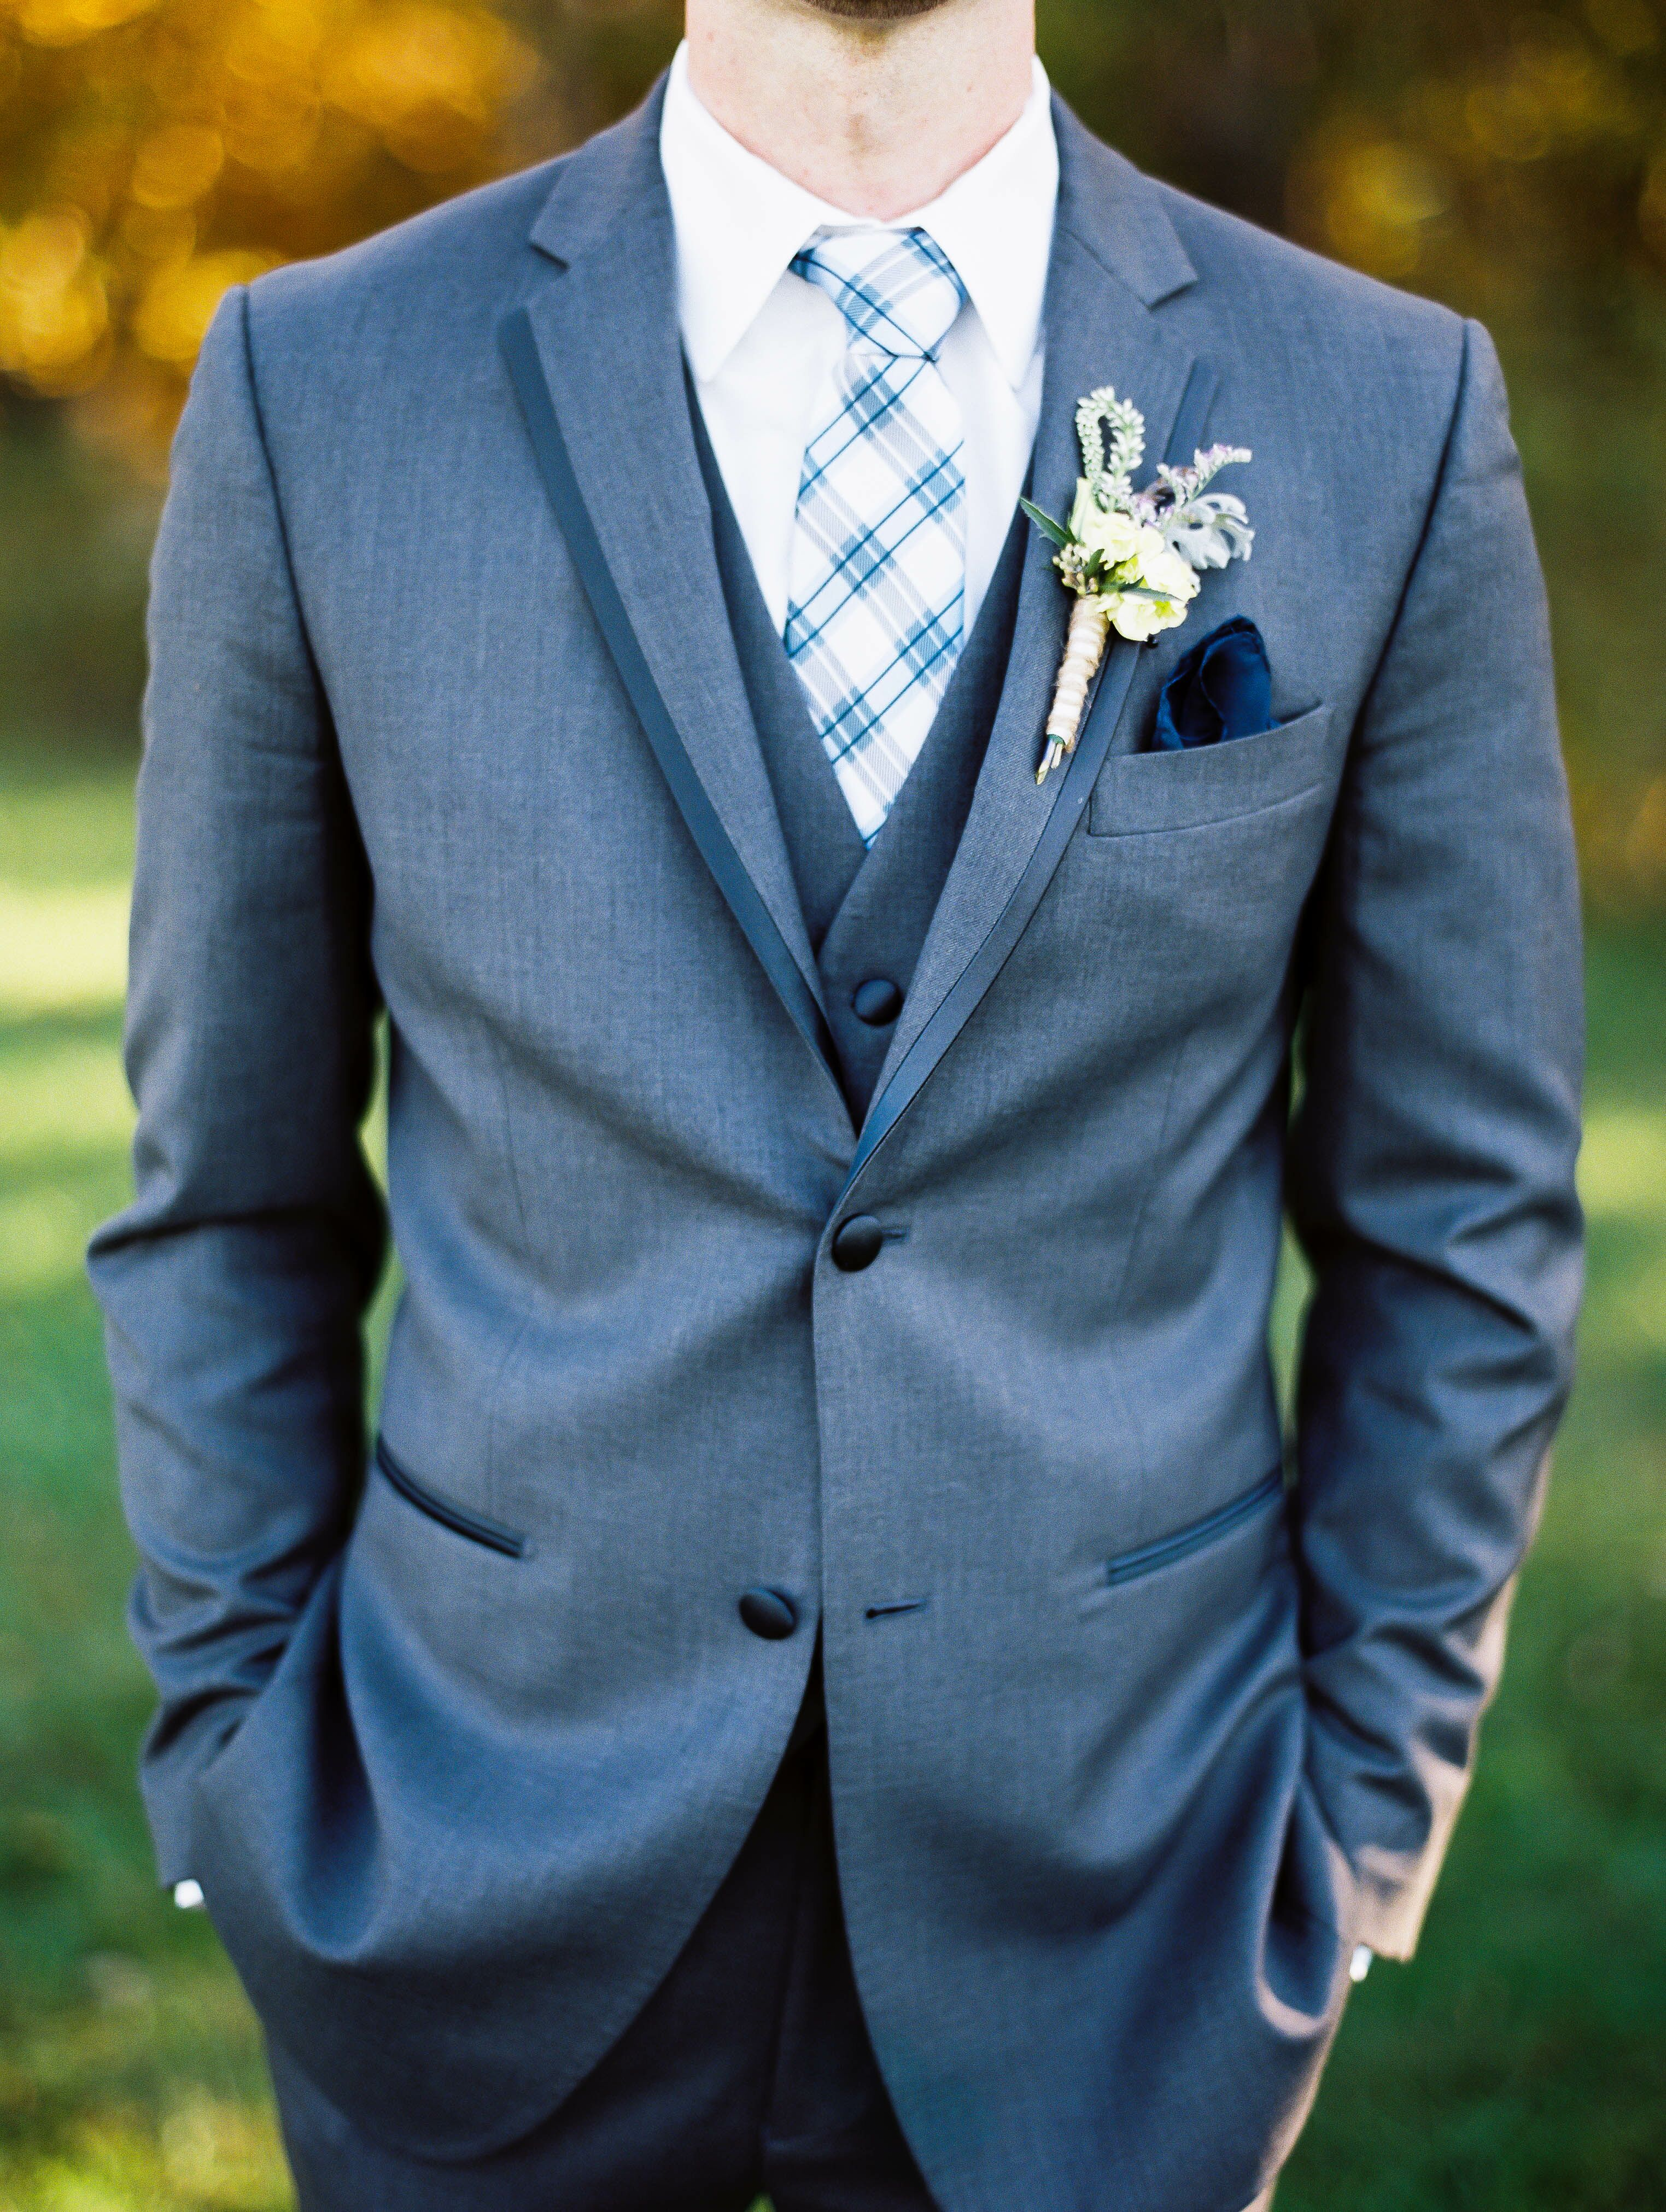 Colorful Groom Suit Rental Images - Wedding Dress Ideas ...